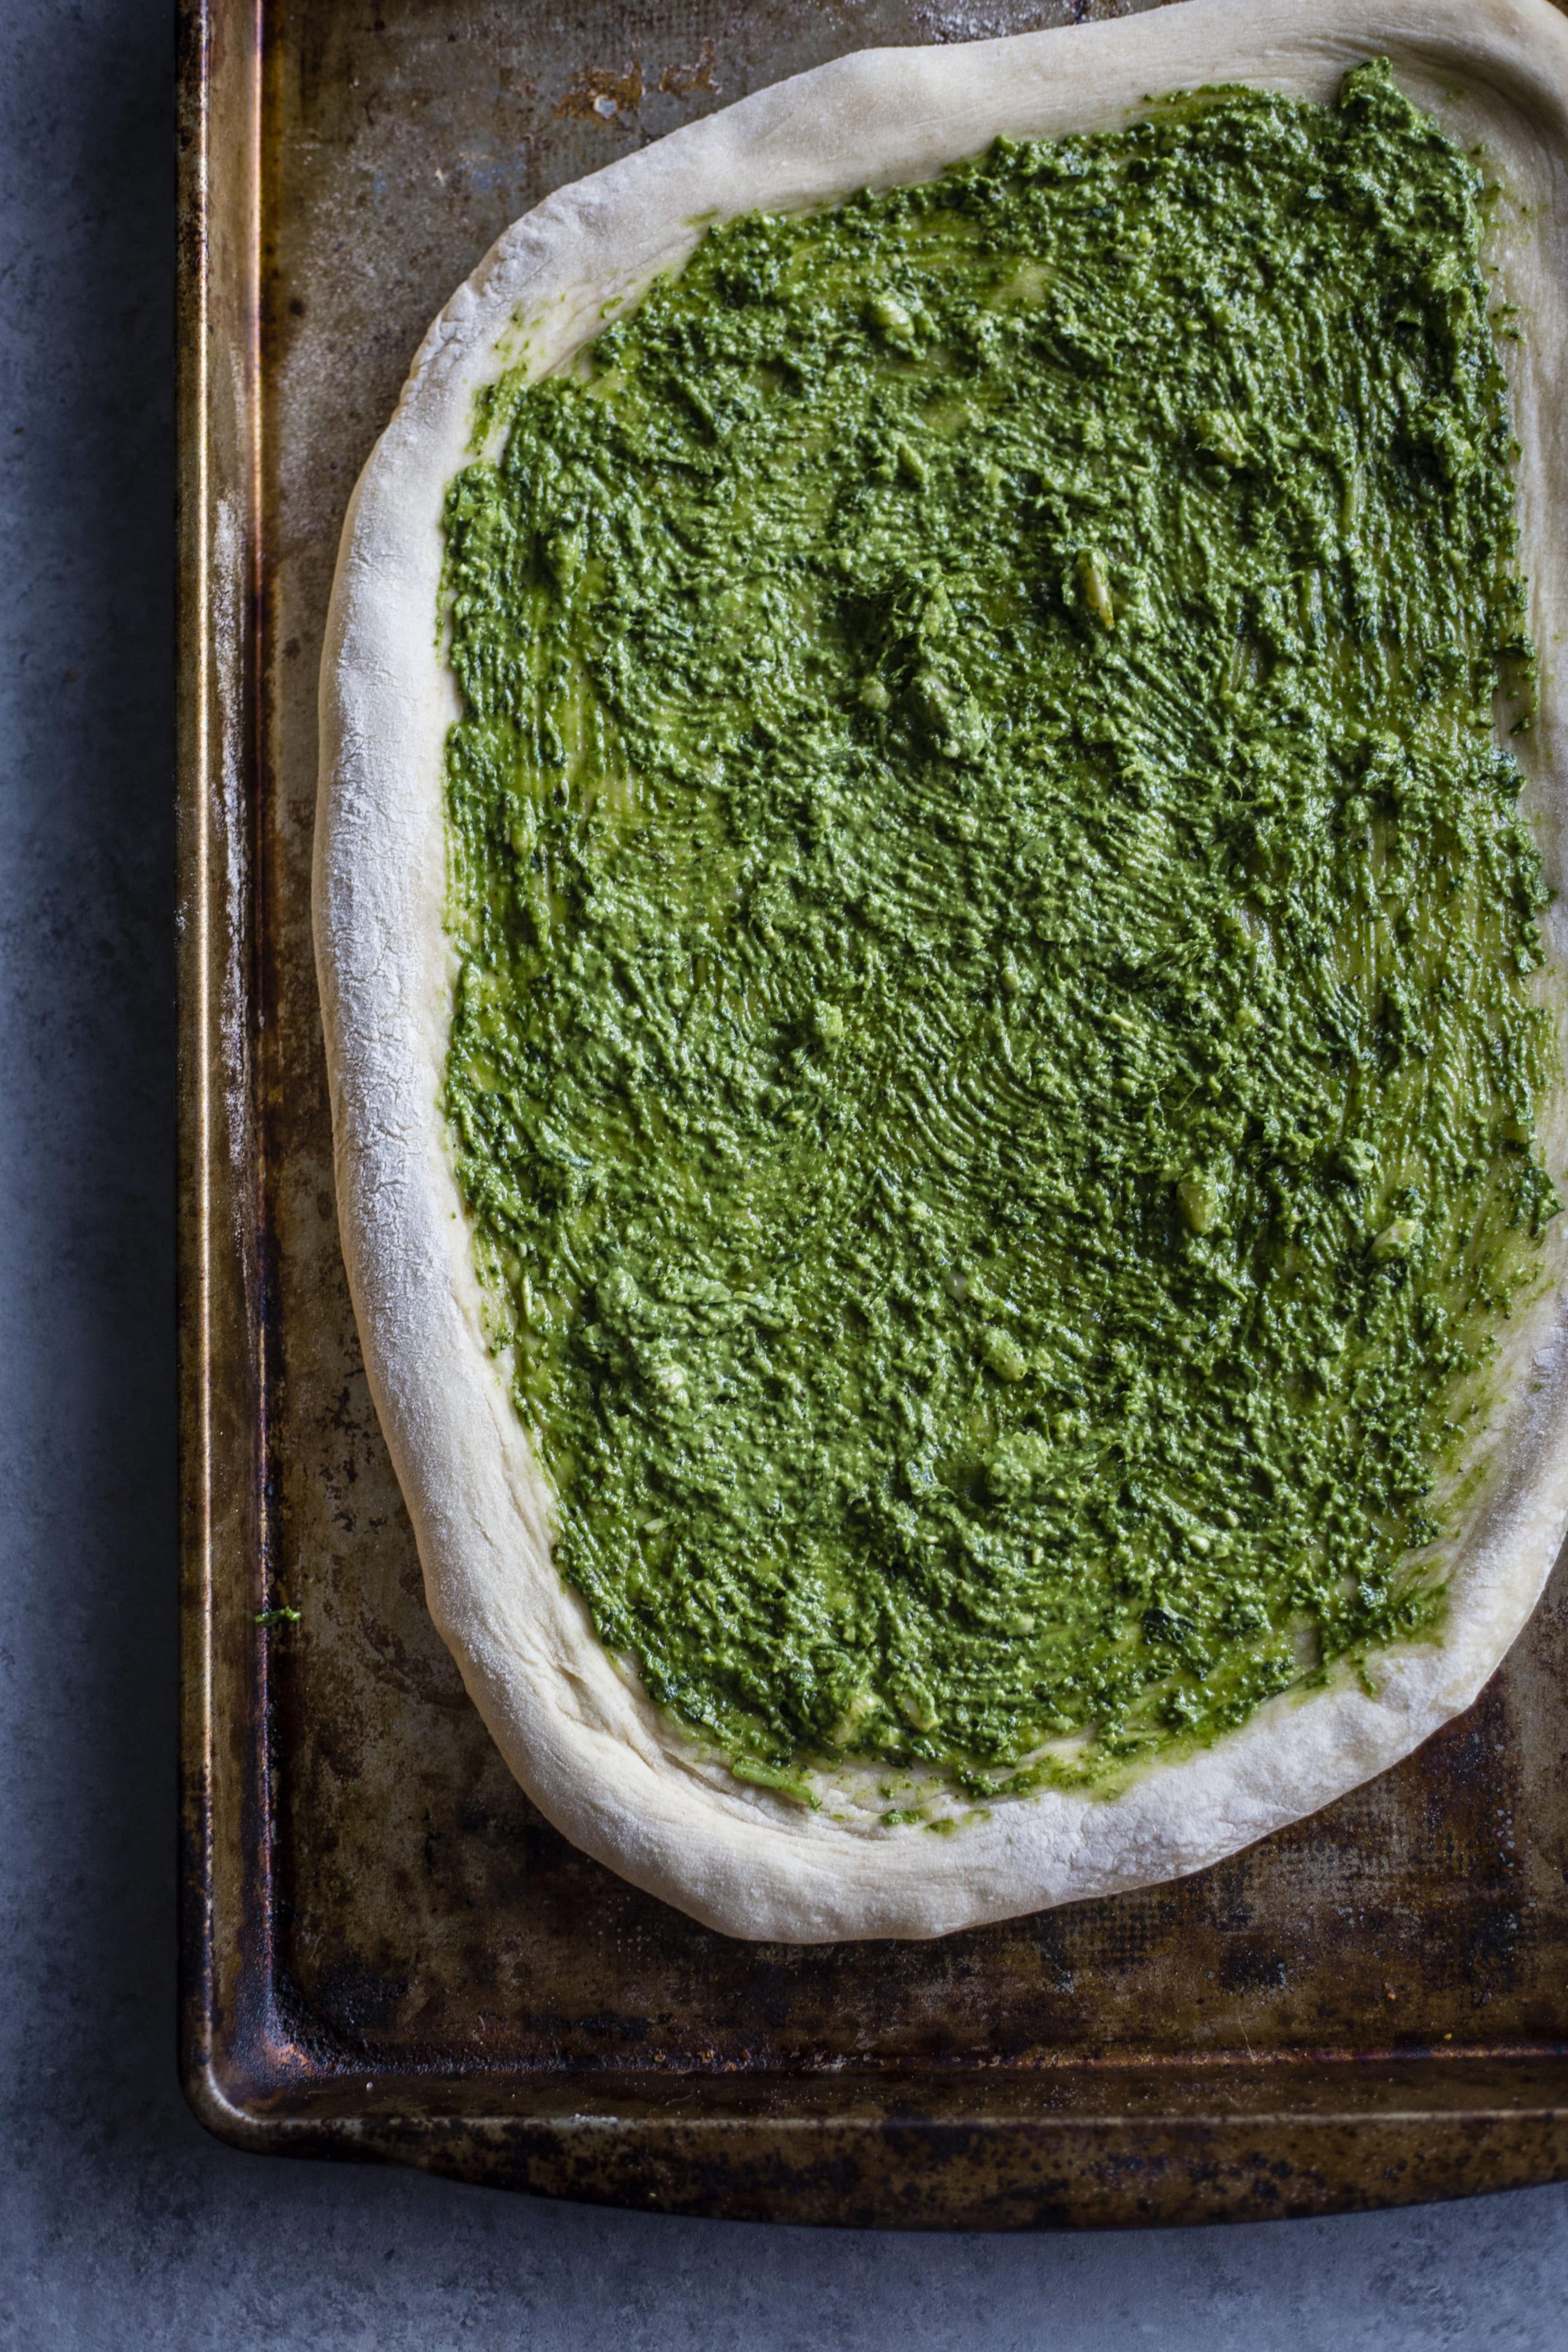 Kale Pesto Pizza | Homemade pizza topped with a simple yet flavorful kale pesto